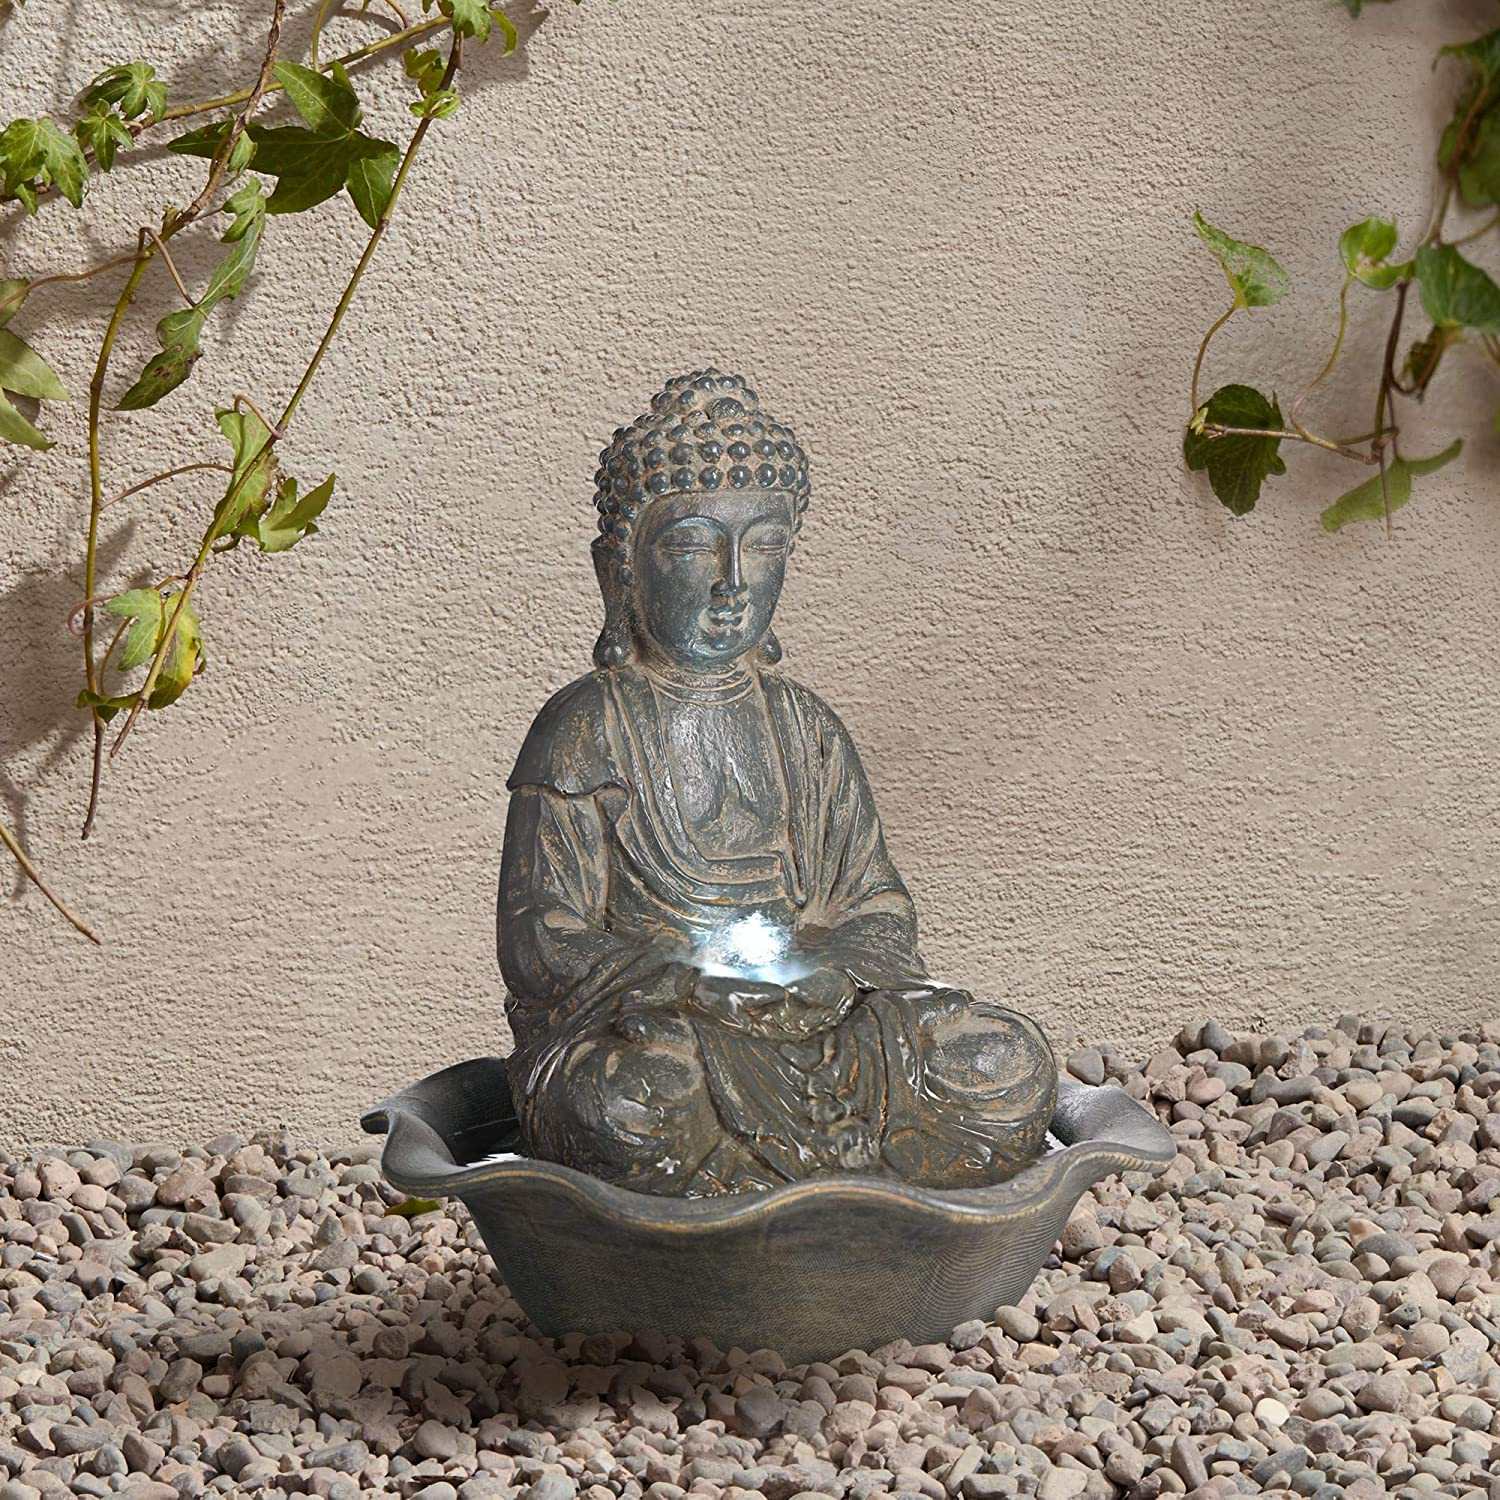 "Universal Lighting and Decor Asian Zen Buddha Outdoor Water Fountain with Light LED 12"" High Sitting for Table Desk Yard Garden Patio Home Relaxation - John Timberland"